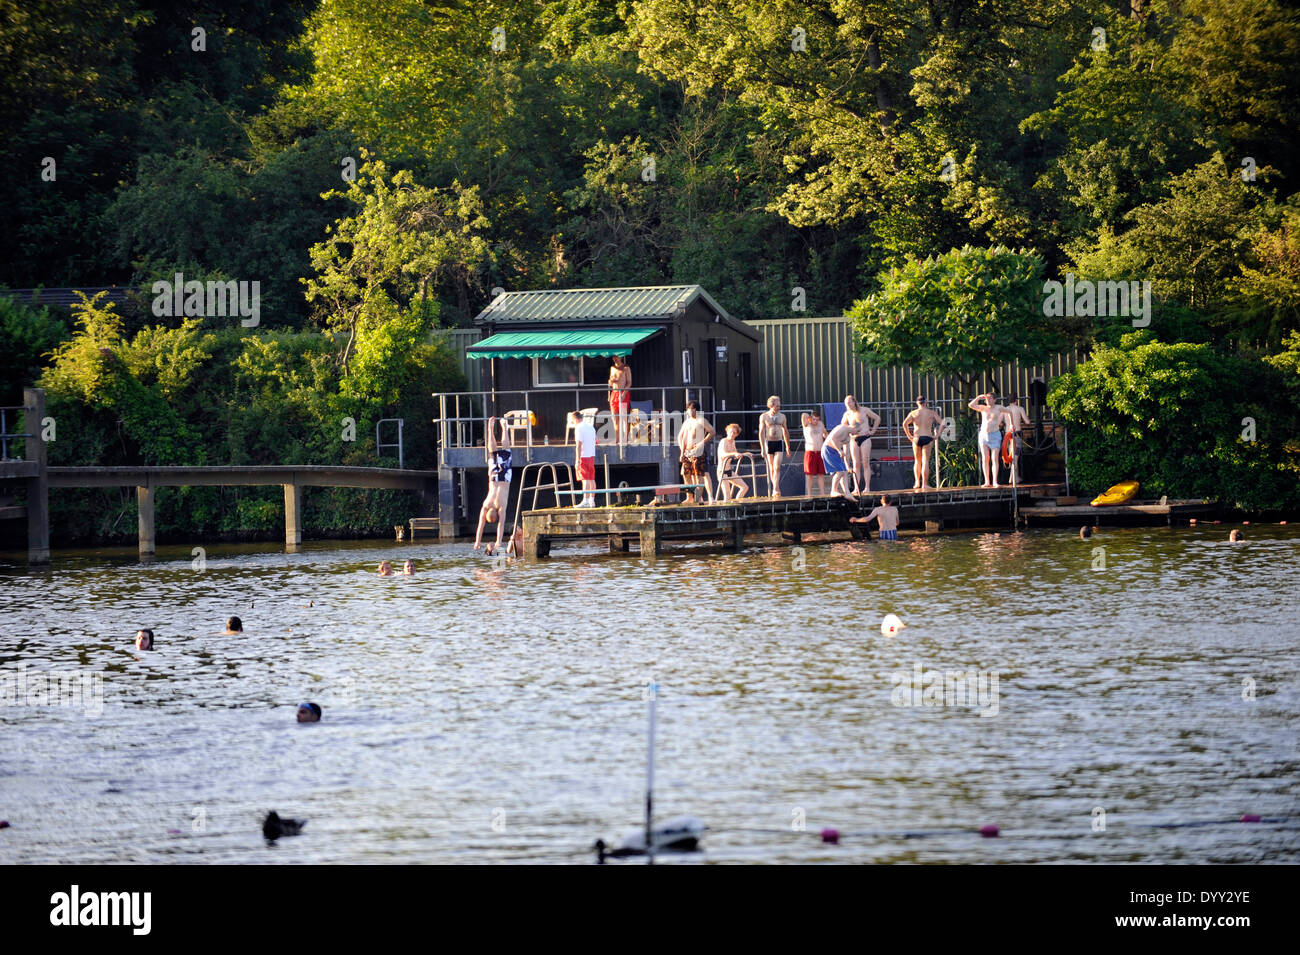 Hampstead heath pond swimming stock photos hampstead heath pond swimming stock images alamy for Hampstead heath park swimming pool